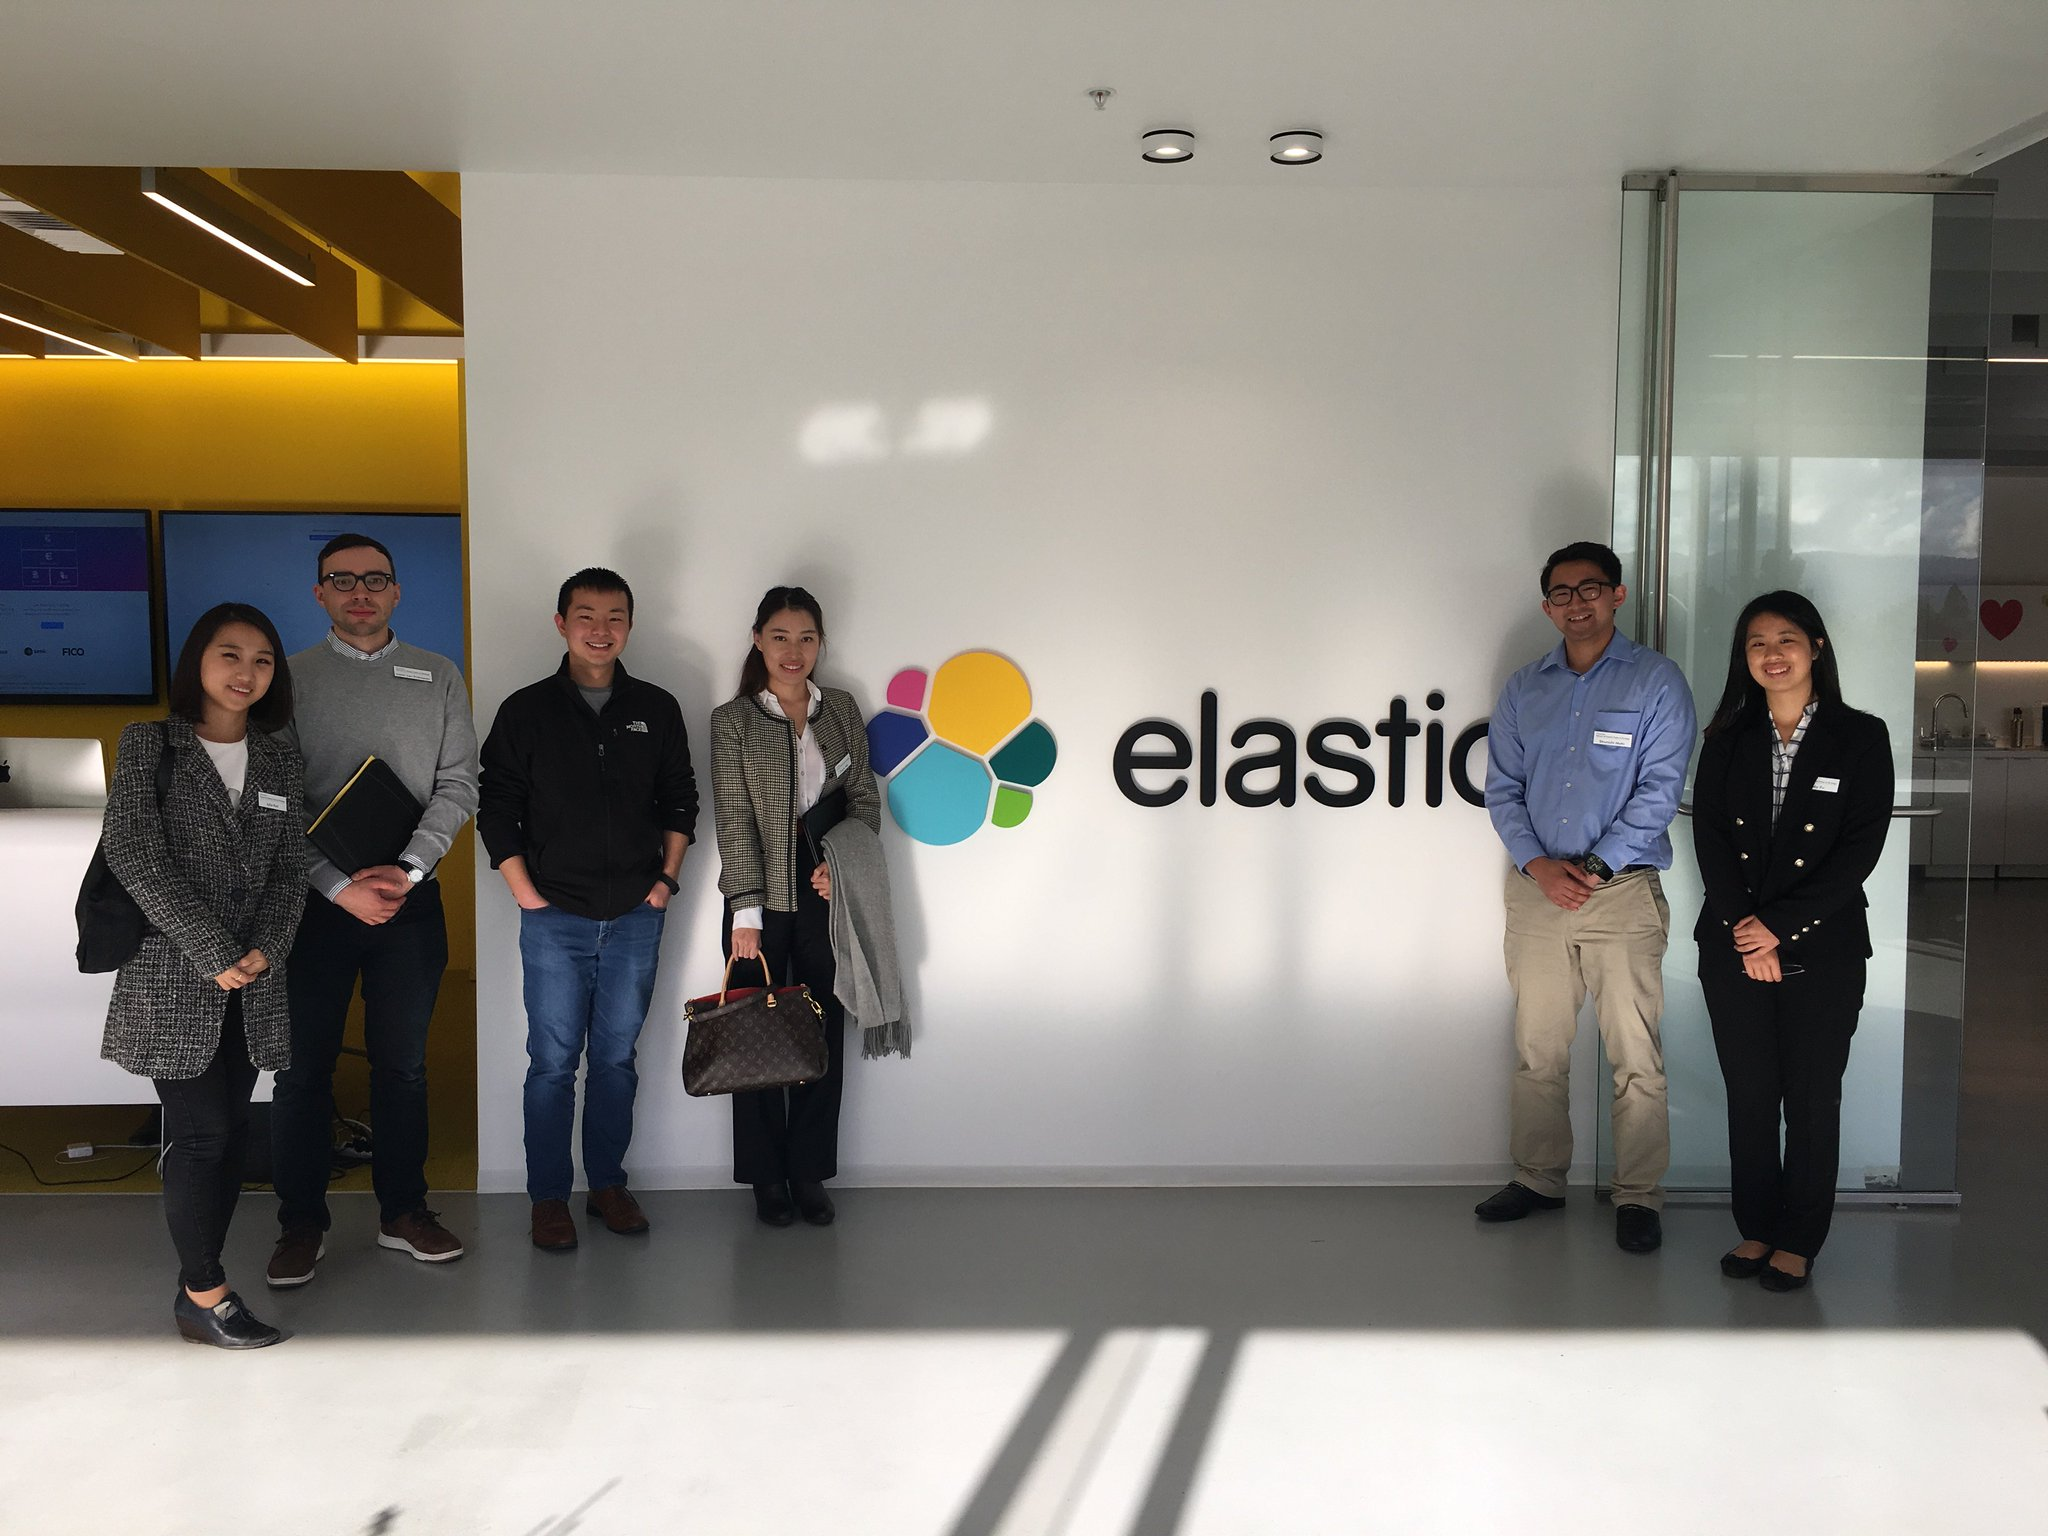 Students also didn't skip out on seeing Elastic in #SiliconValley—thanks for the wonderful visit, @elastic! https://t.co/T28fhd1Mzb